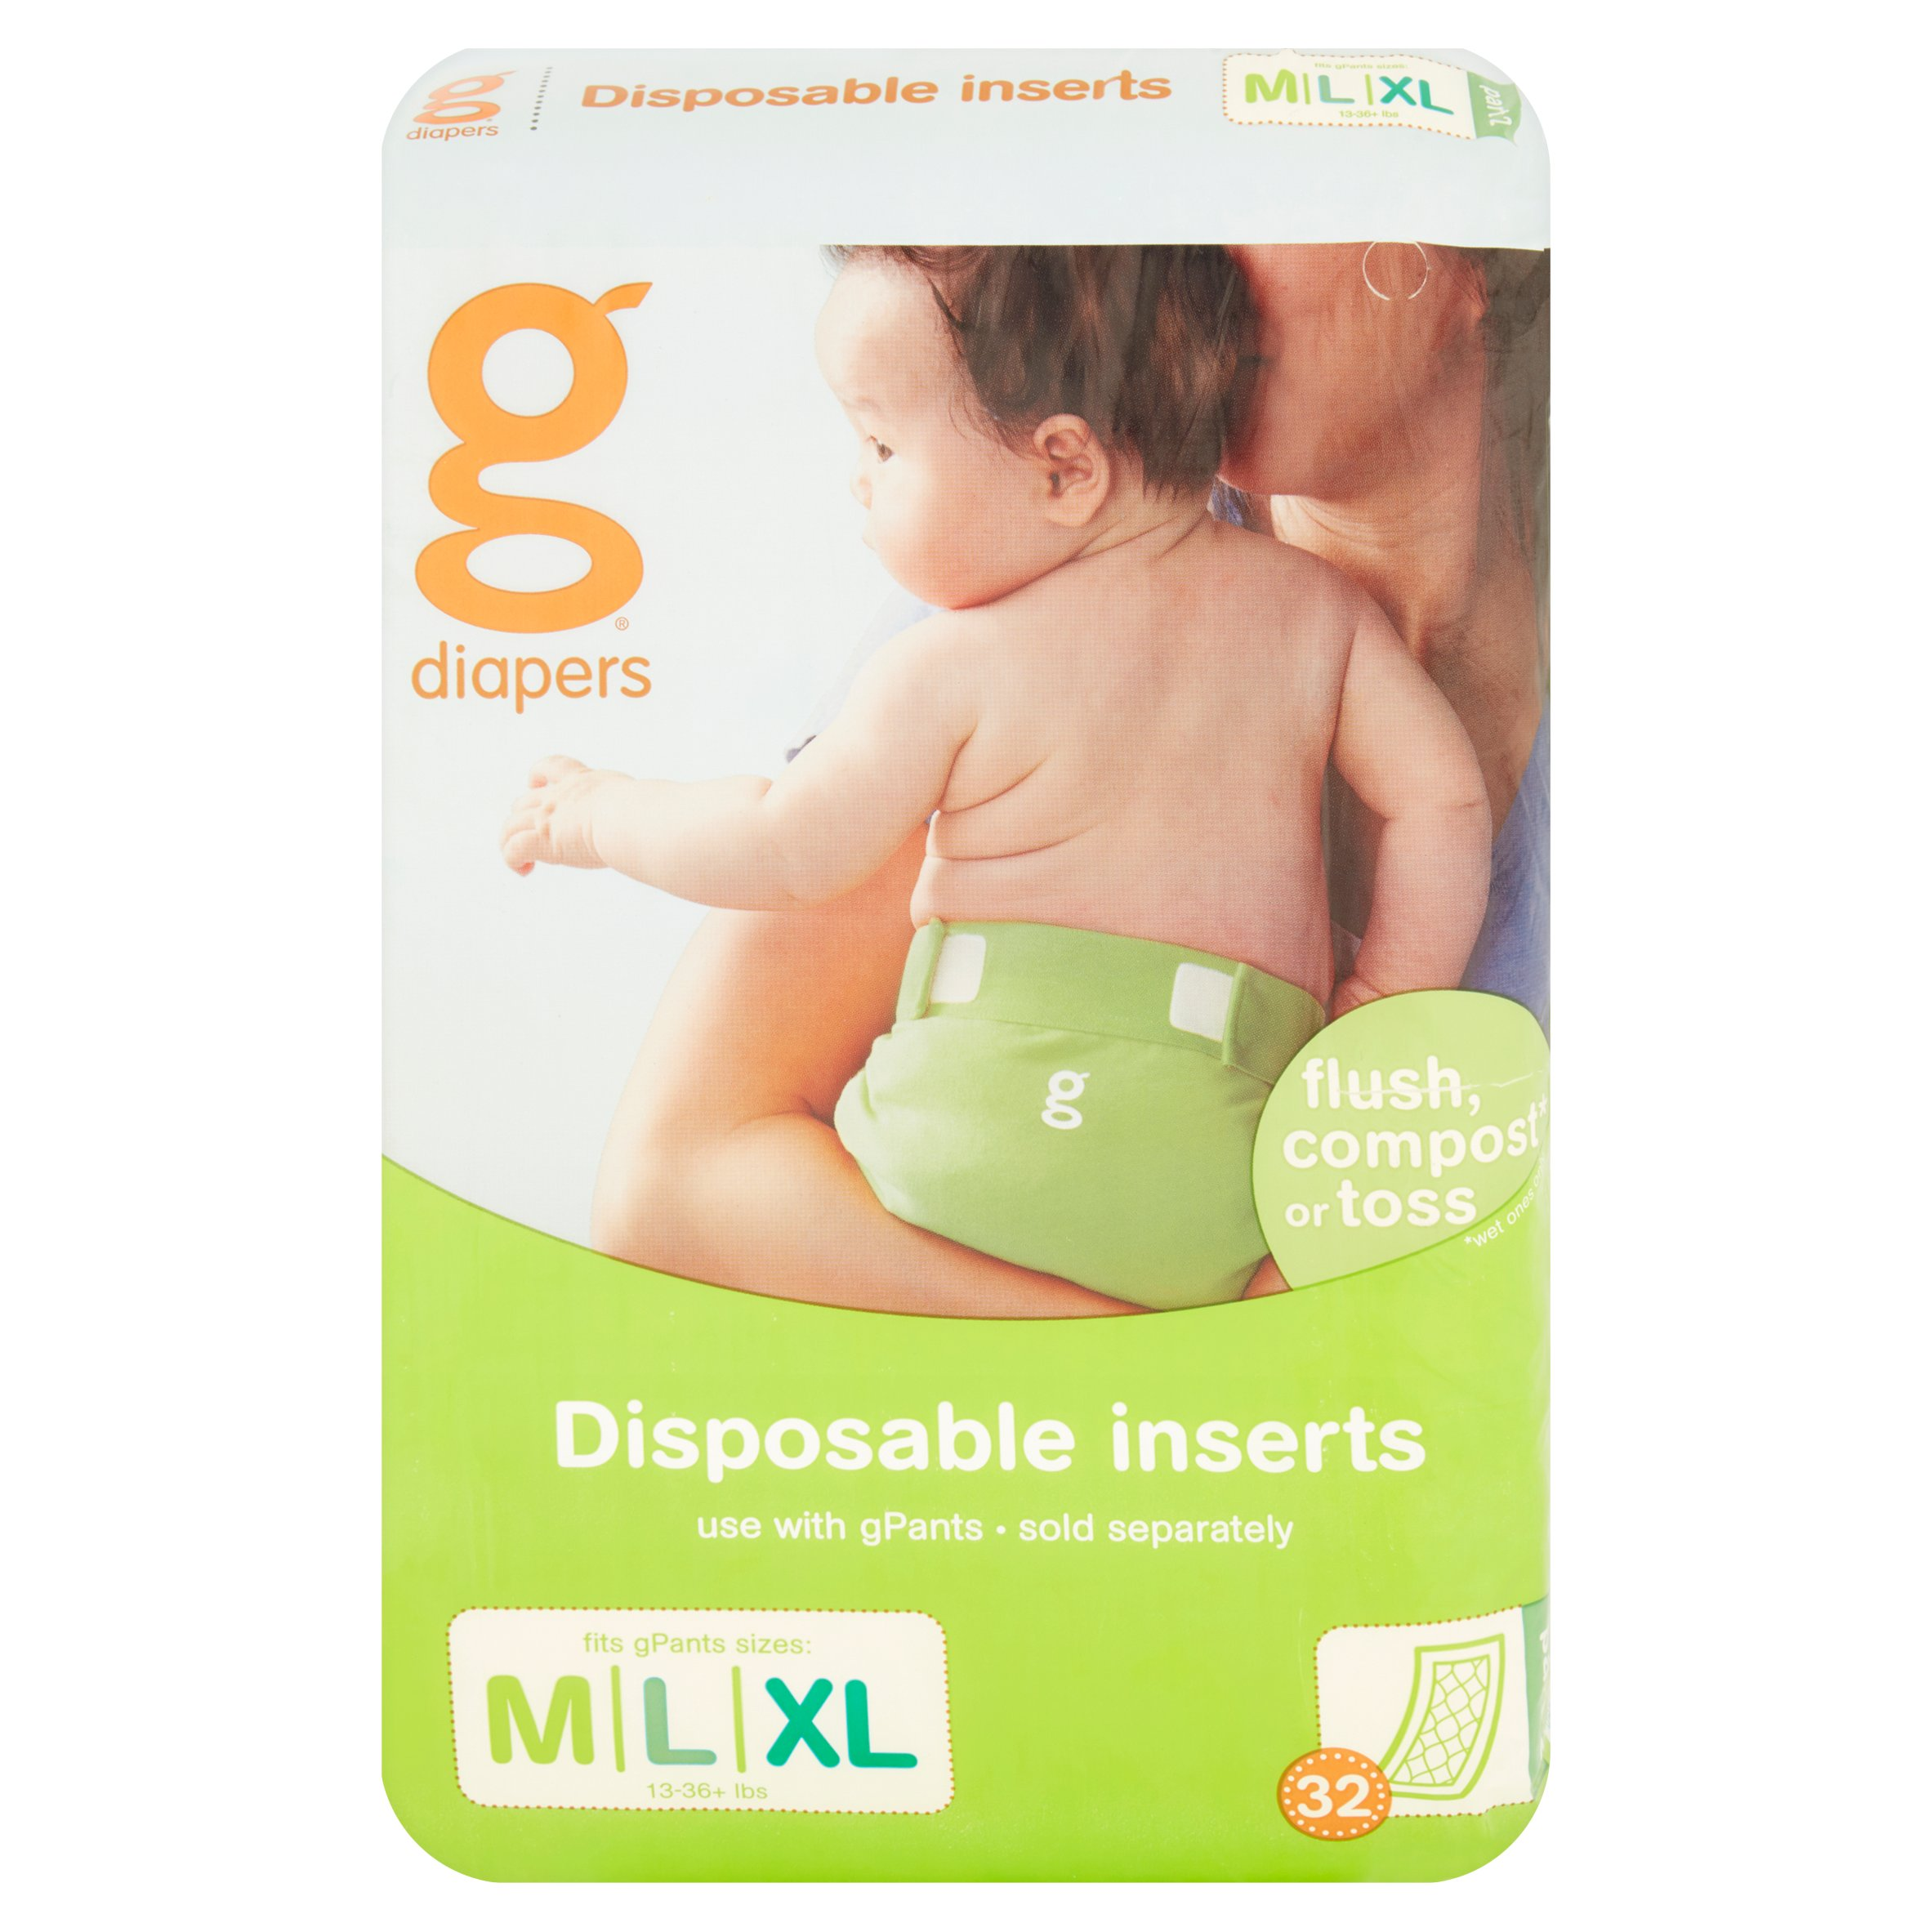 gDiapers Disposable Inserts 13-36+ lbs, 32 count